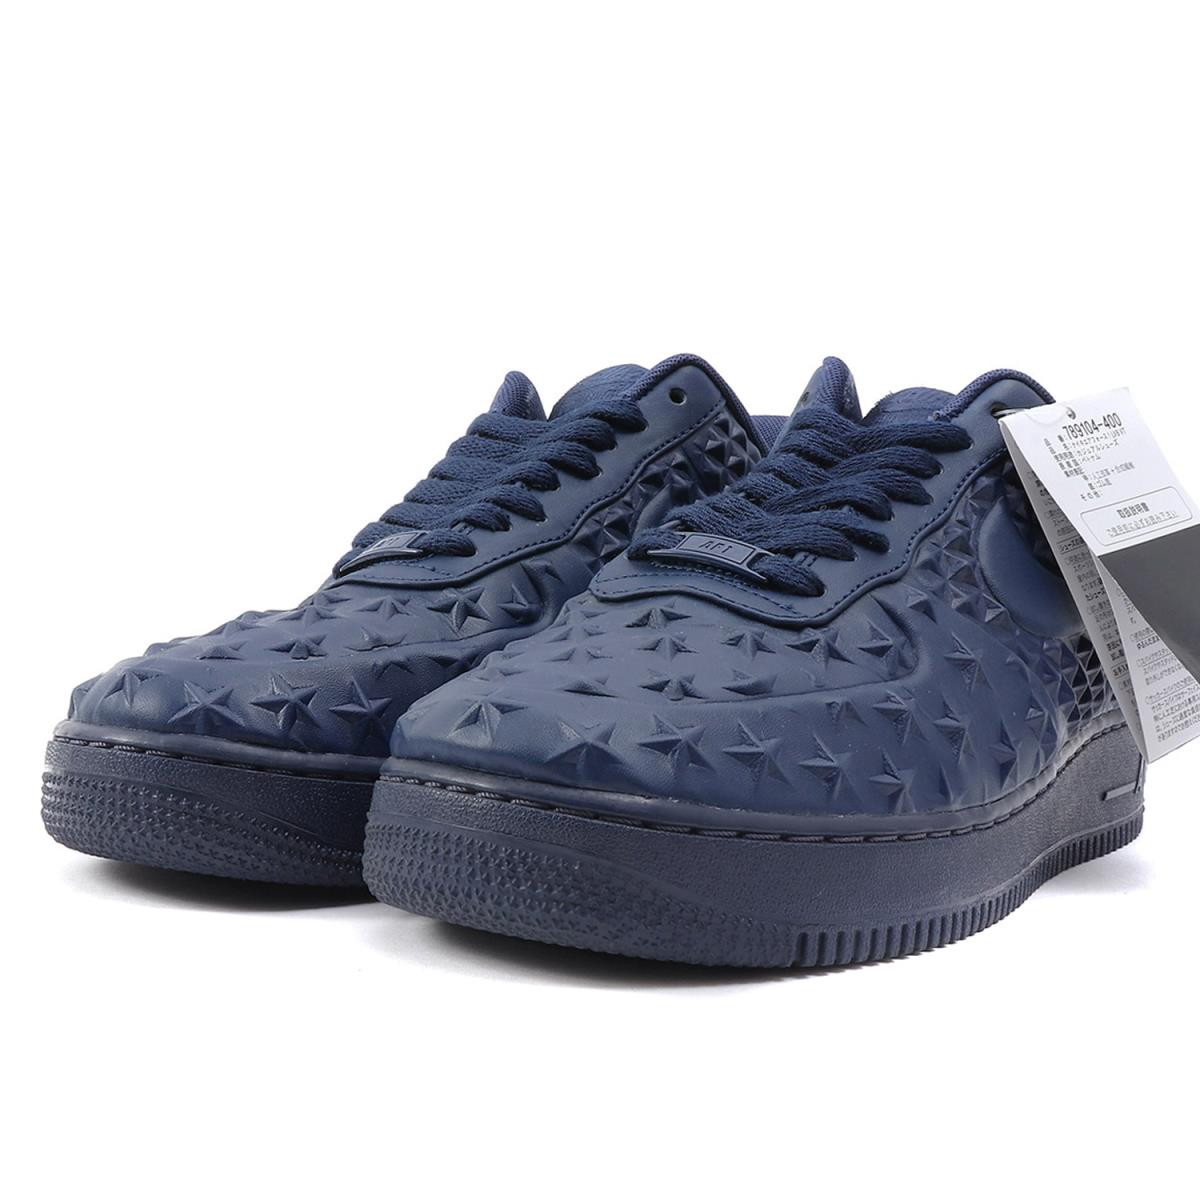 NIKE (Nike) AIR FORCE 1 LV8 VT INDEPENDENCE DAY (789,104 400) midnight navy